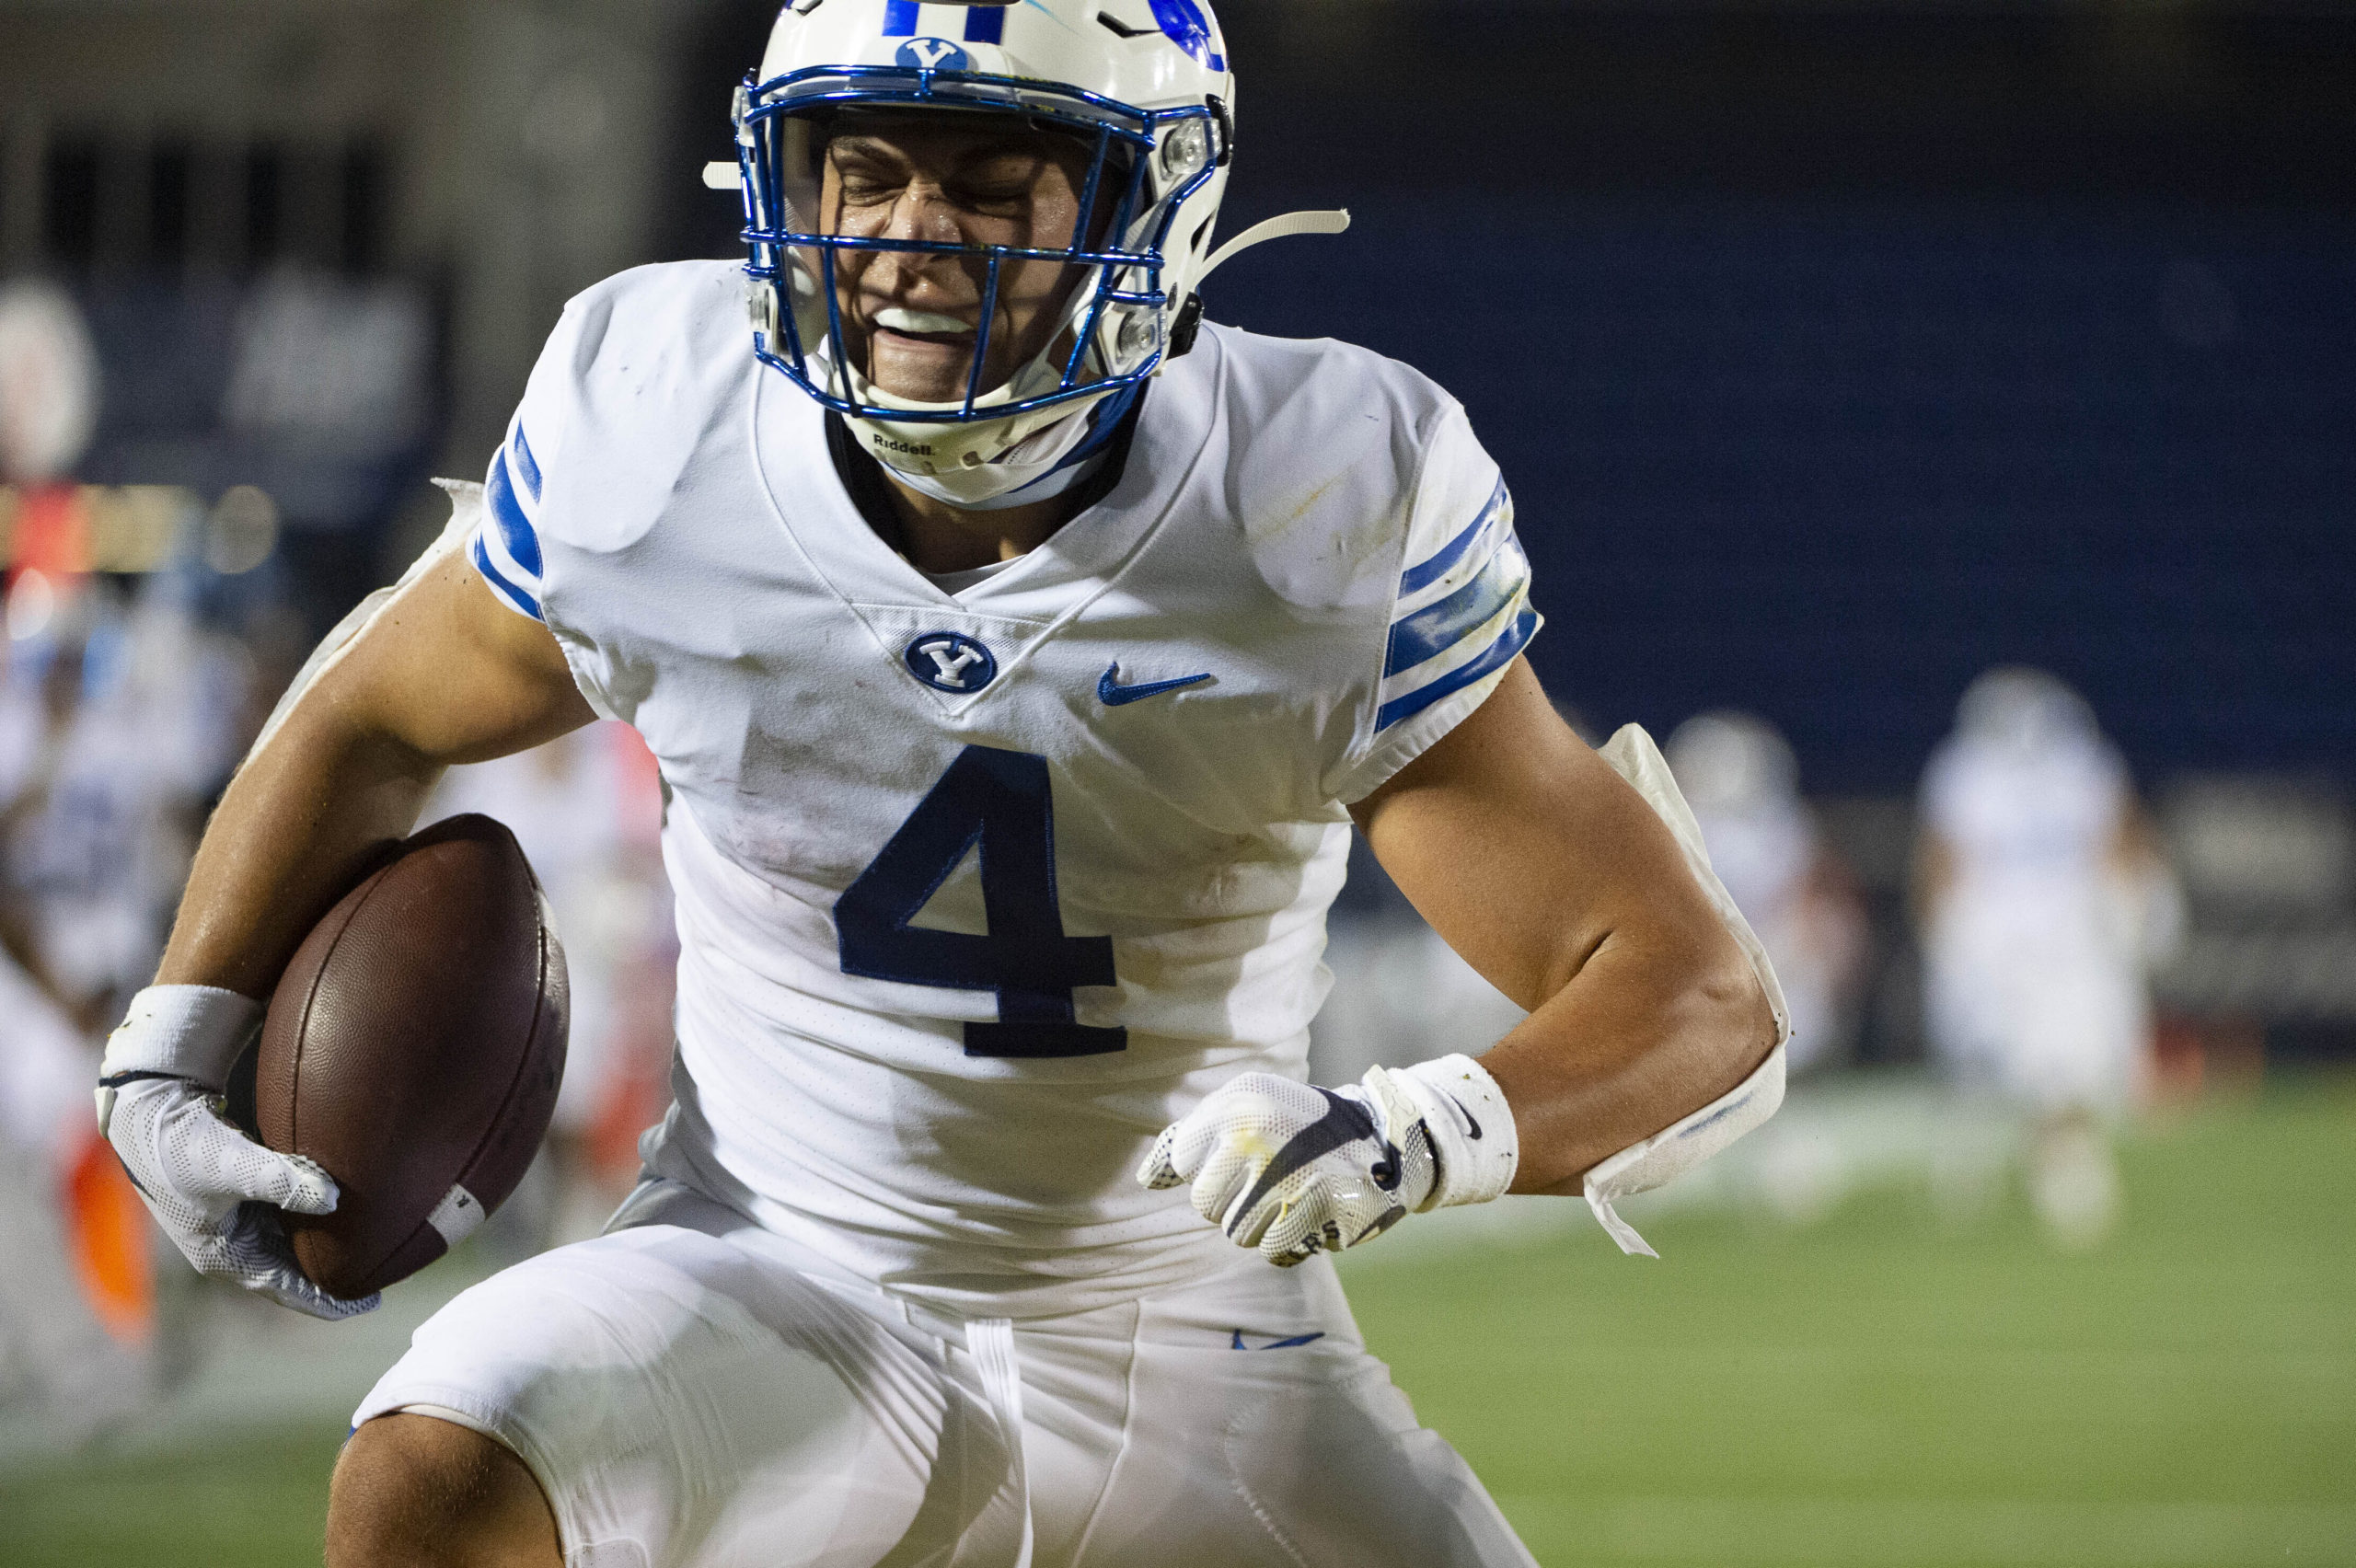 Byu Football Schedule Grinds To A Halt After Players Test Positive For Covid 19 St George News